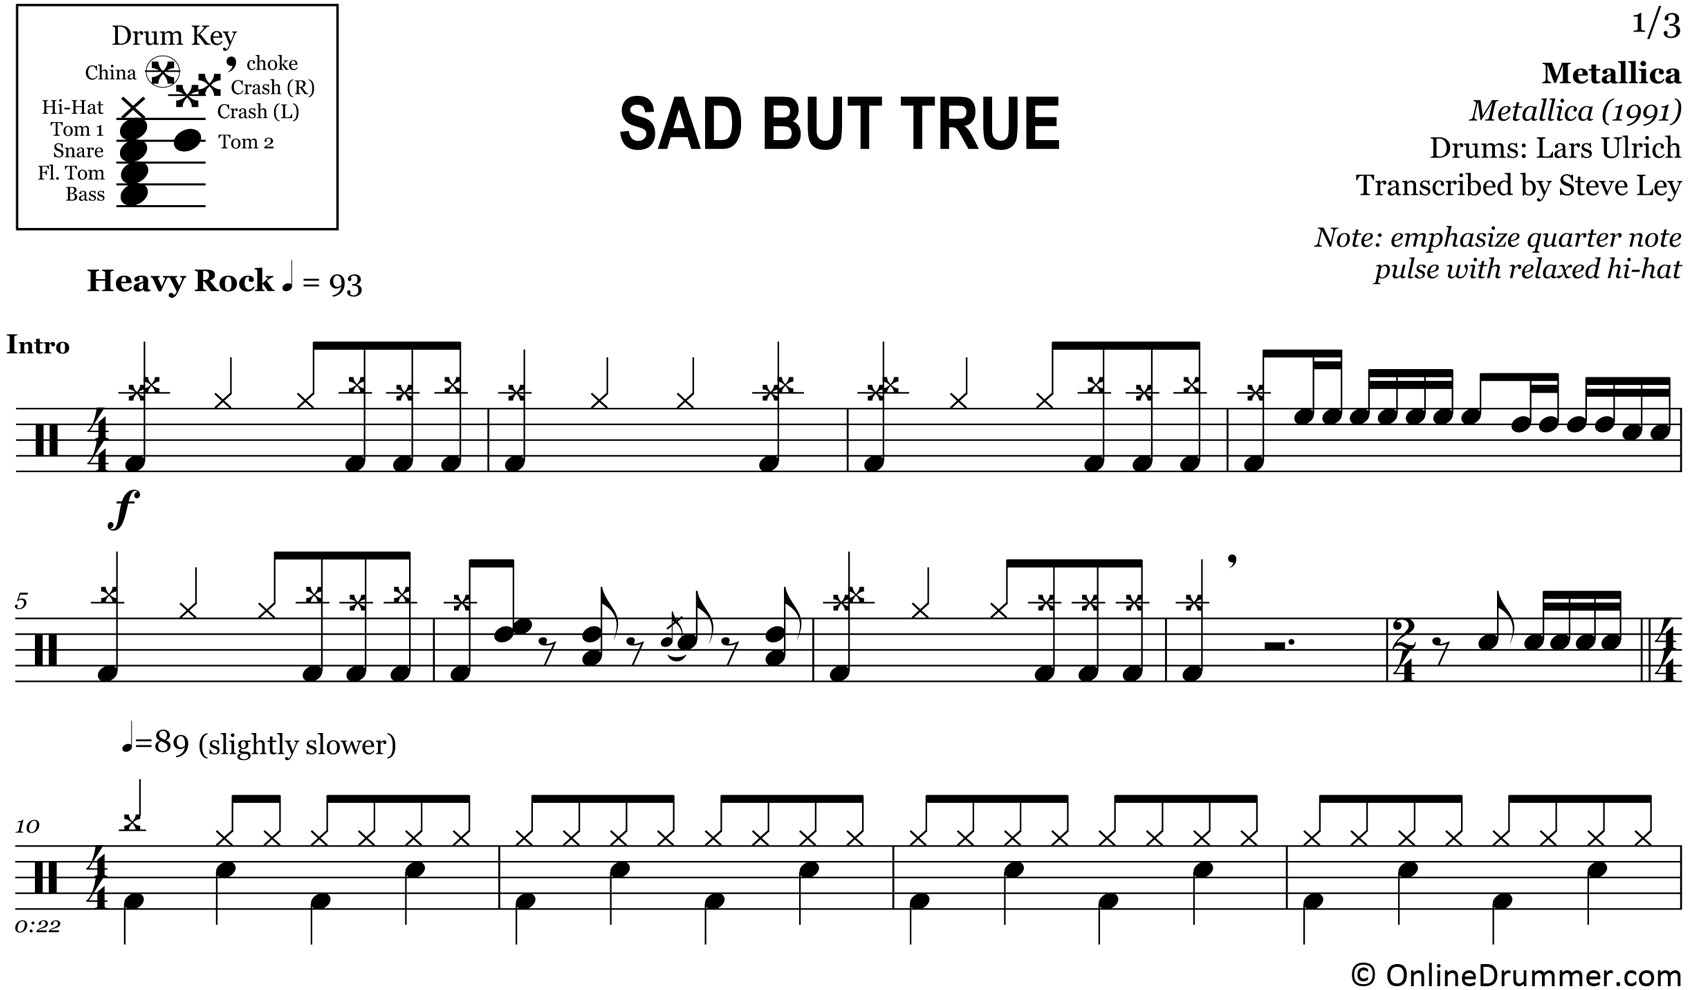 Sad But True - Metallica - Drum Sheet Music